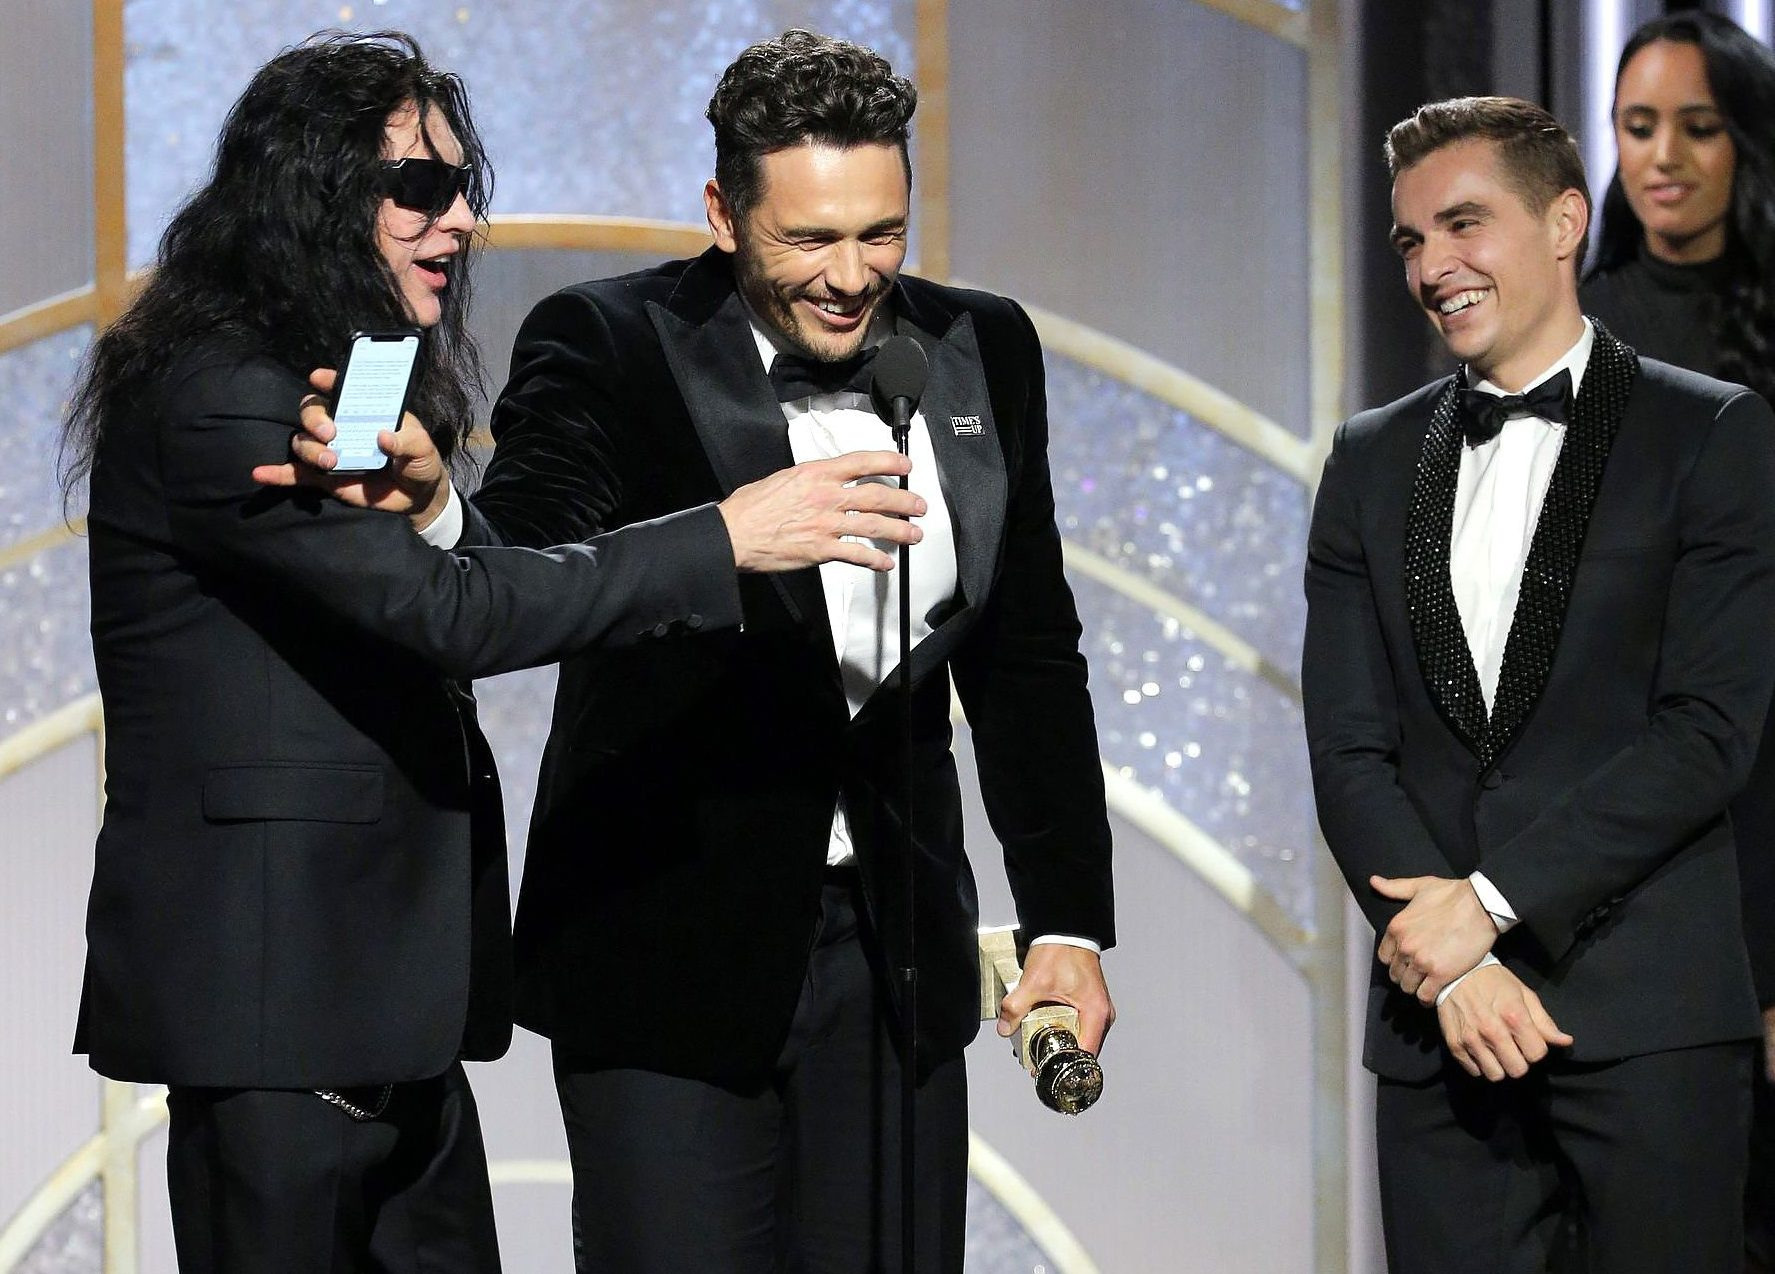 James Franco pushes The Room's Tommy Wiseau away from the mic at the Golden Globes